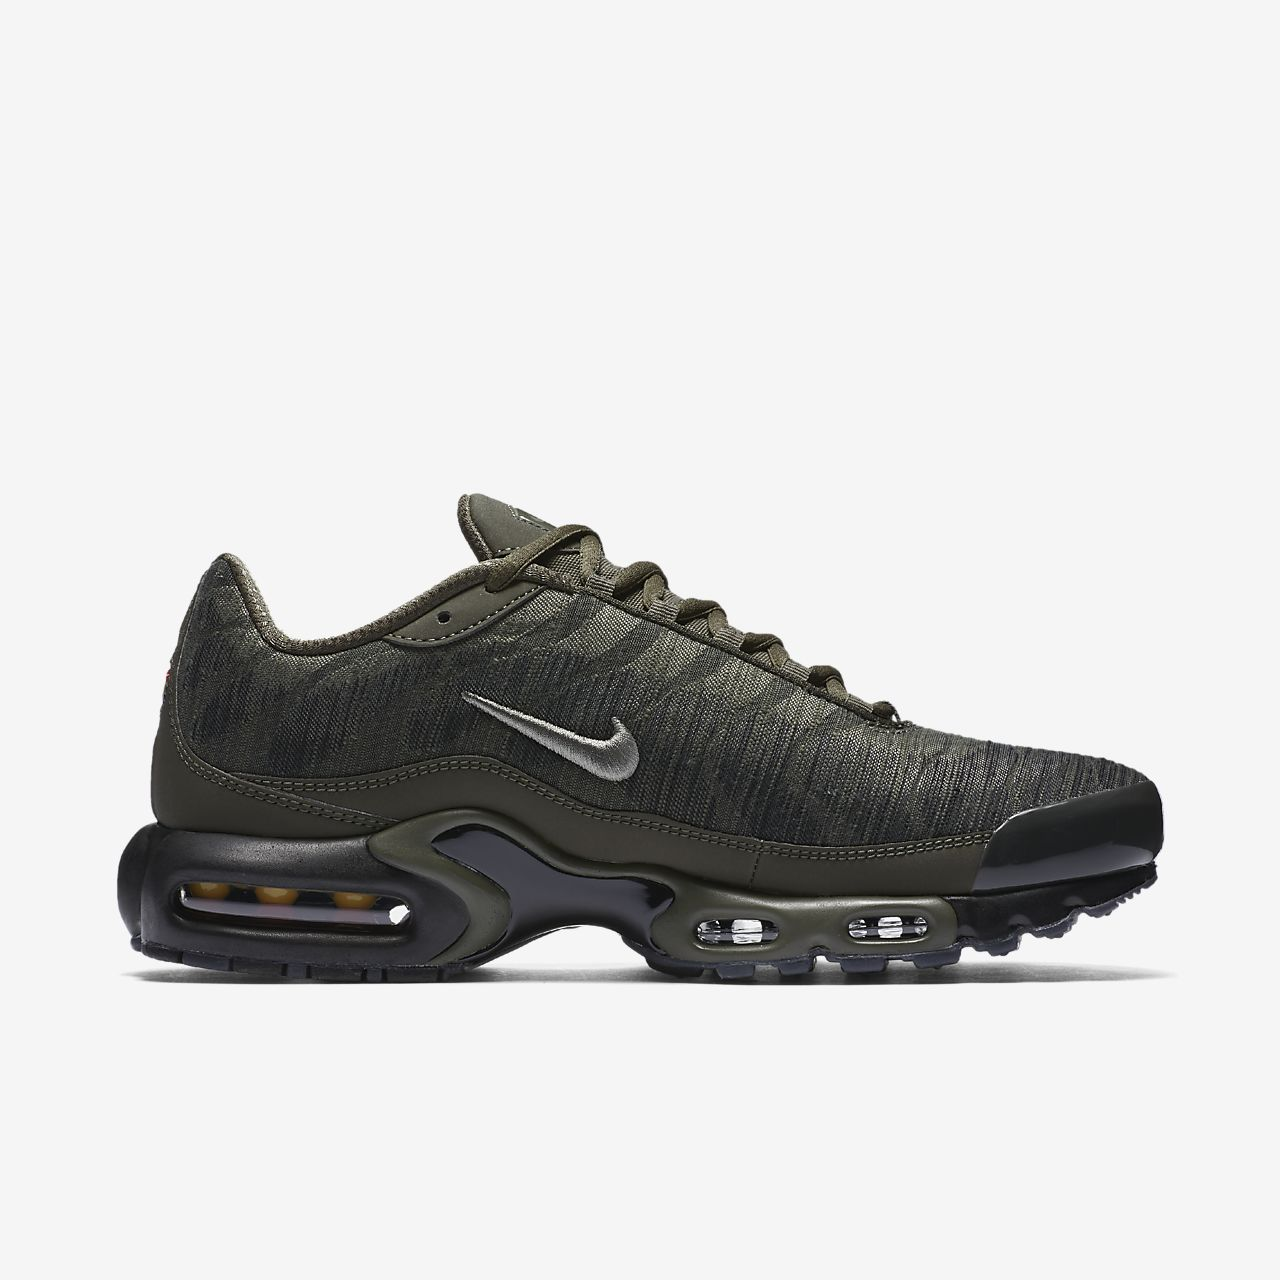 ... Nike Air Max Plus Jacquard Herrenschuh